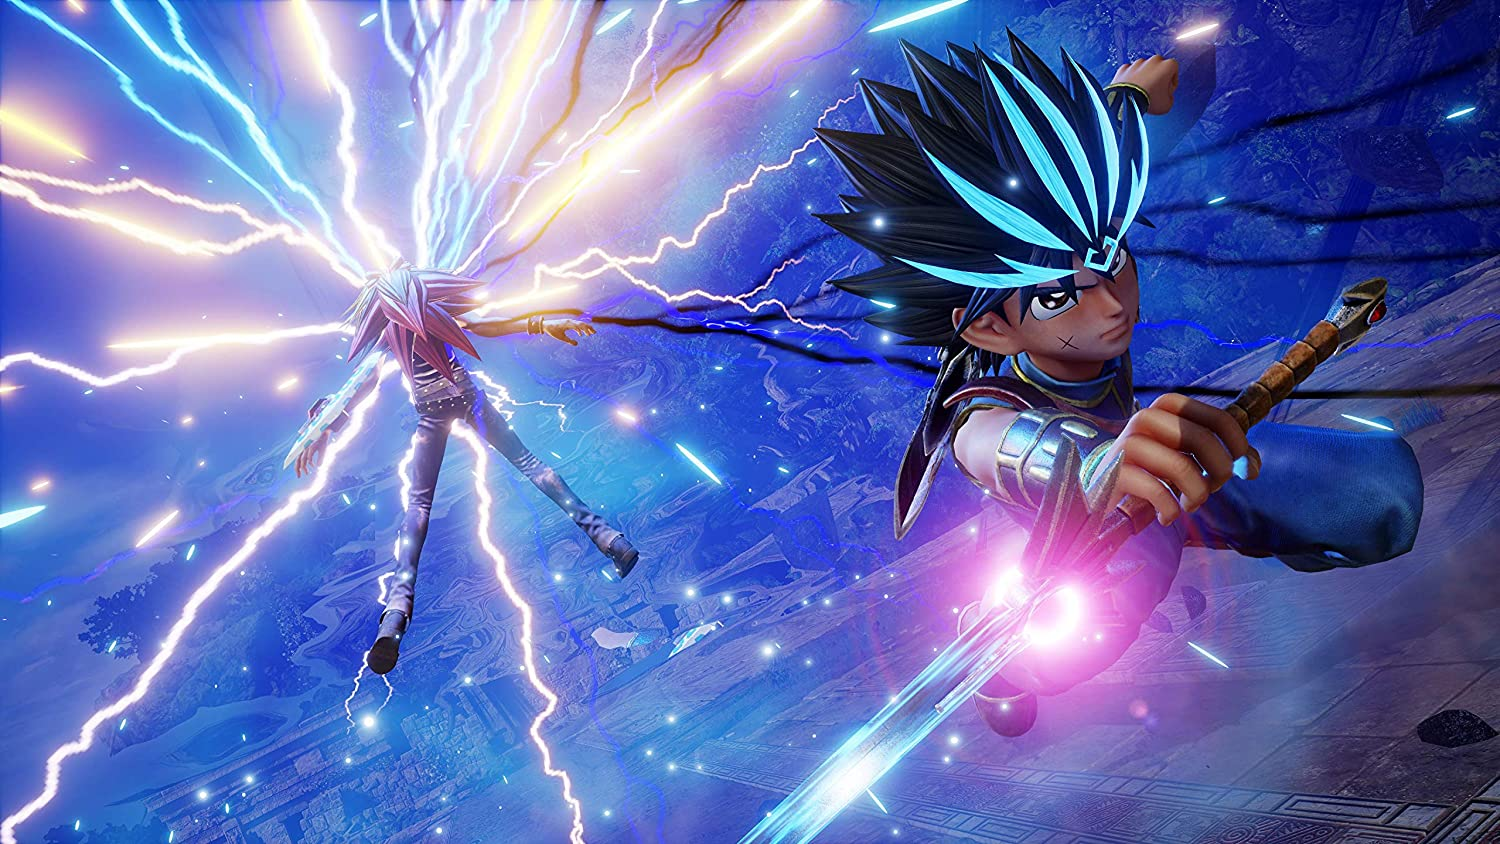 Amazon.com: Jump Force: Ultimate Edition - Xbox One: Bandai Namco Games Amer: Video Games